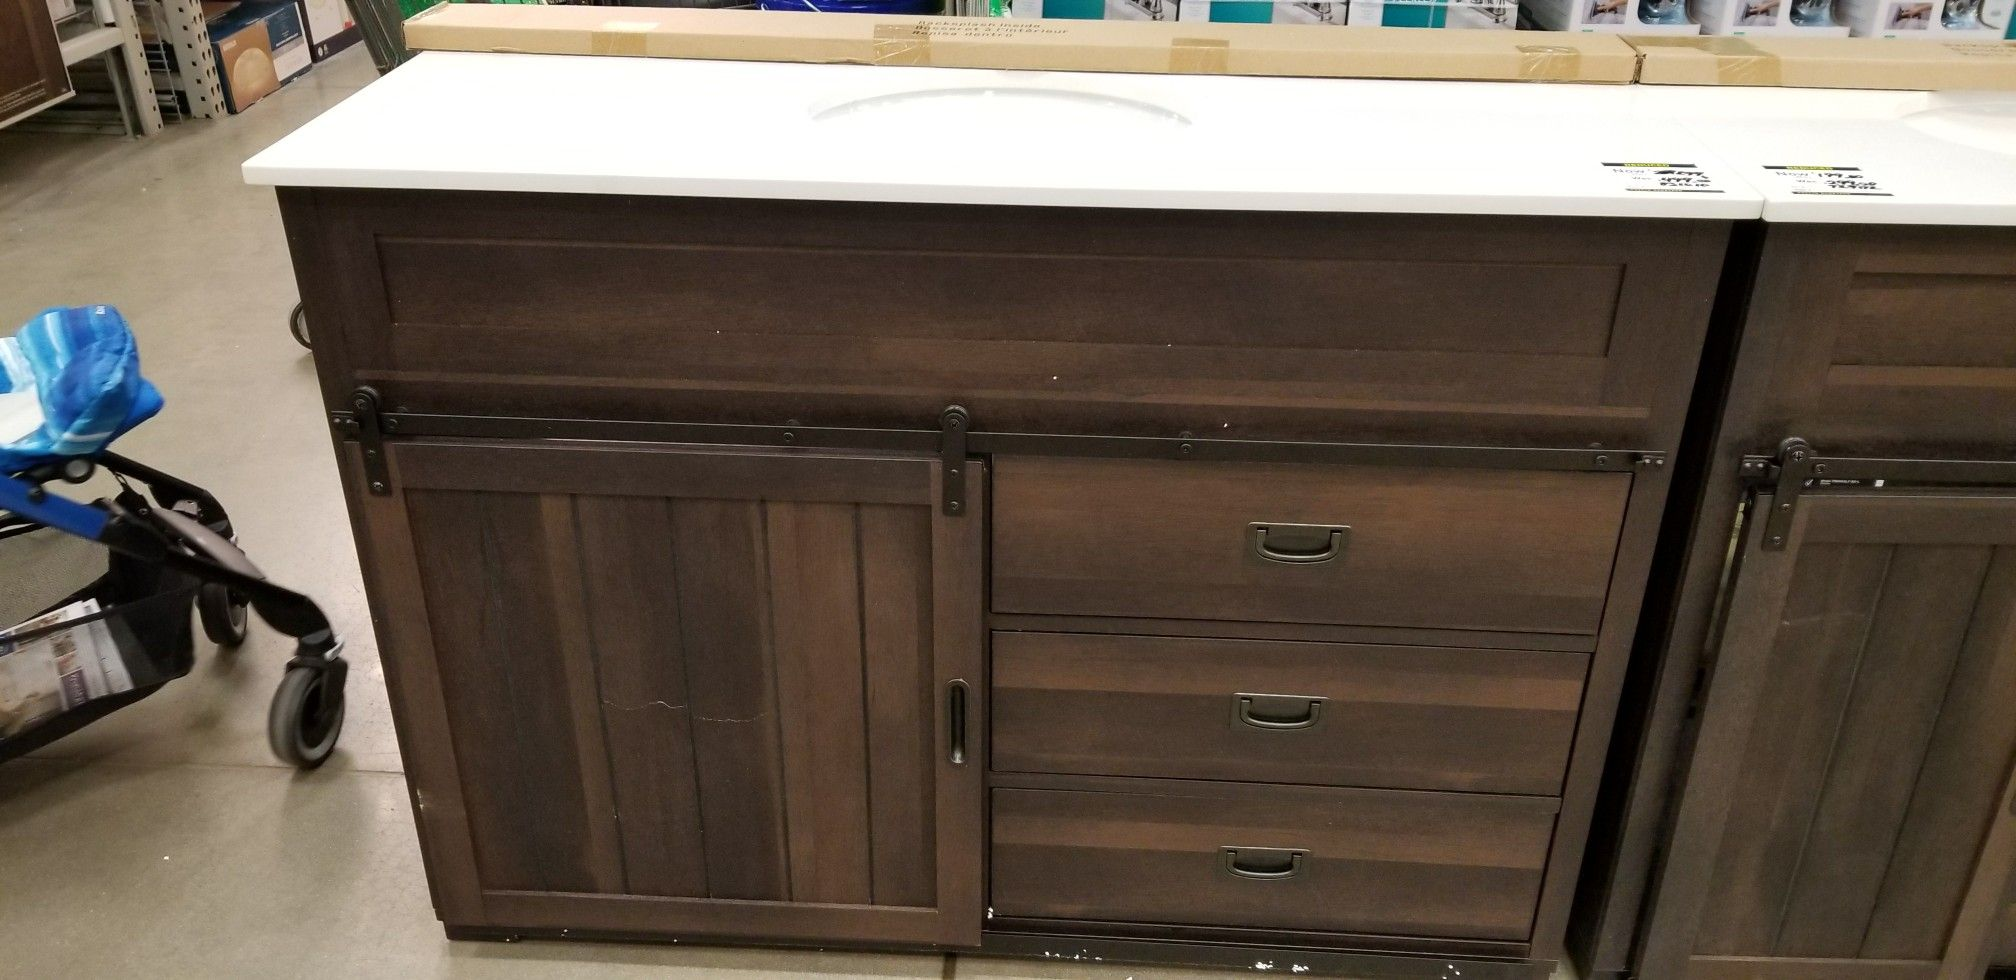 Pin by Joanna Souser on reno Vanity